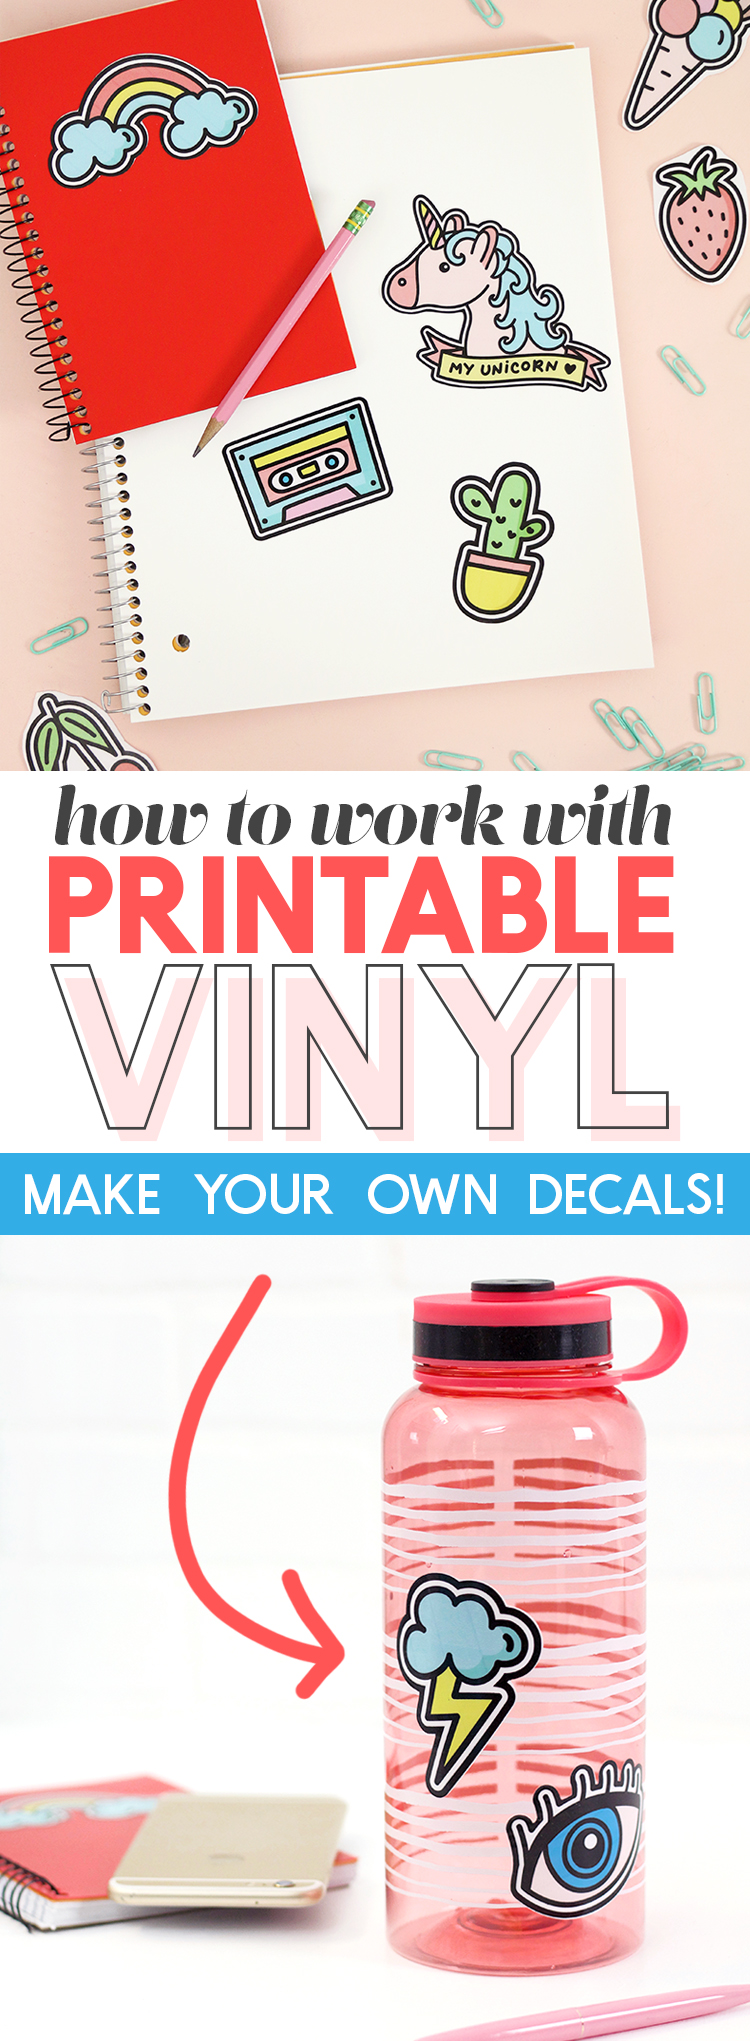 How to Work with Printable Vinyl: DIY Vinyl Stickers